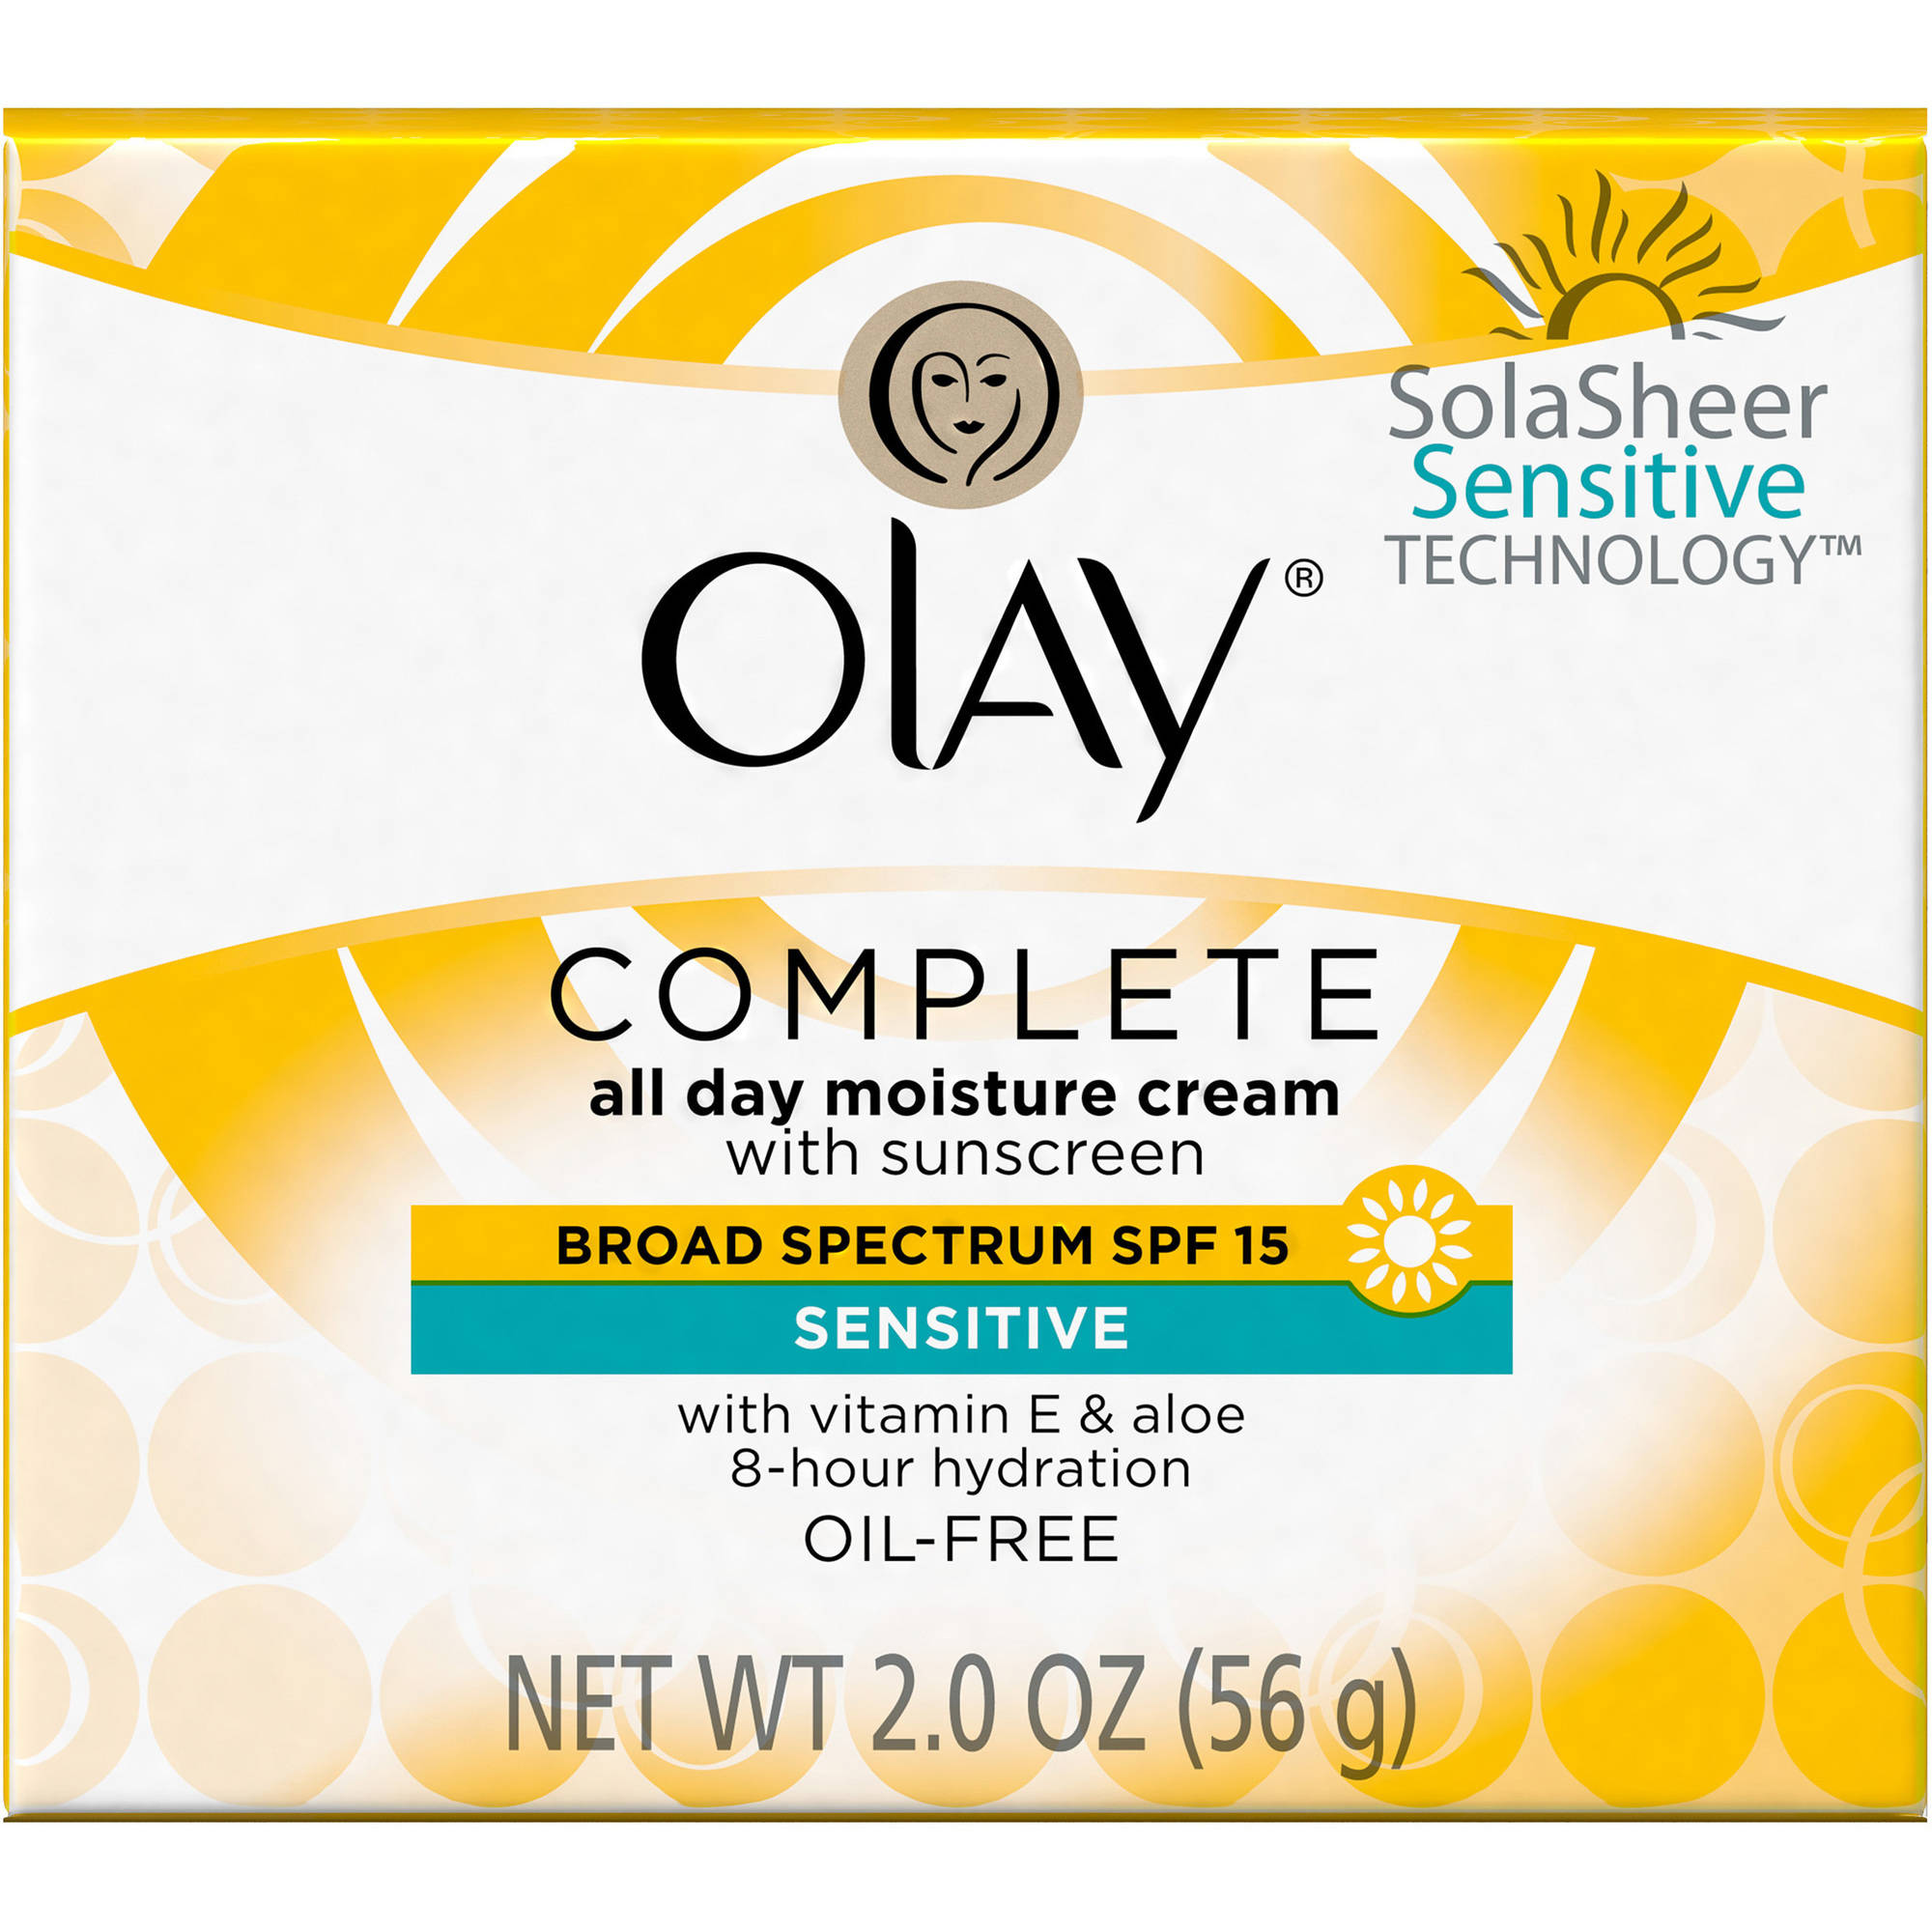 Olay Complete Facial Moisturizer Cream SPF 15 Sensitive Skin 2 oz